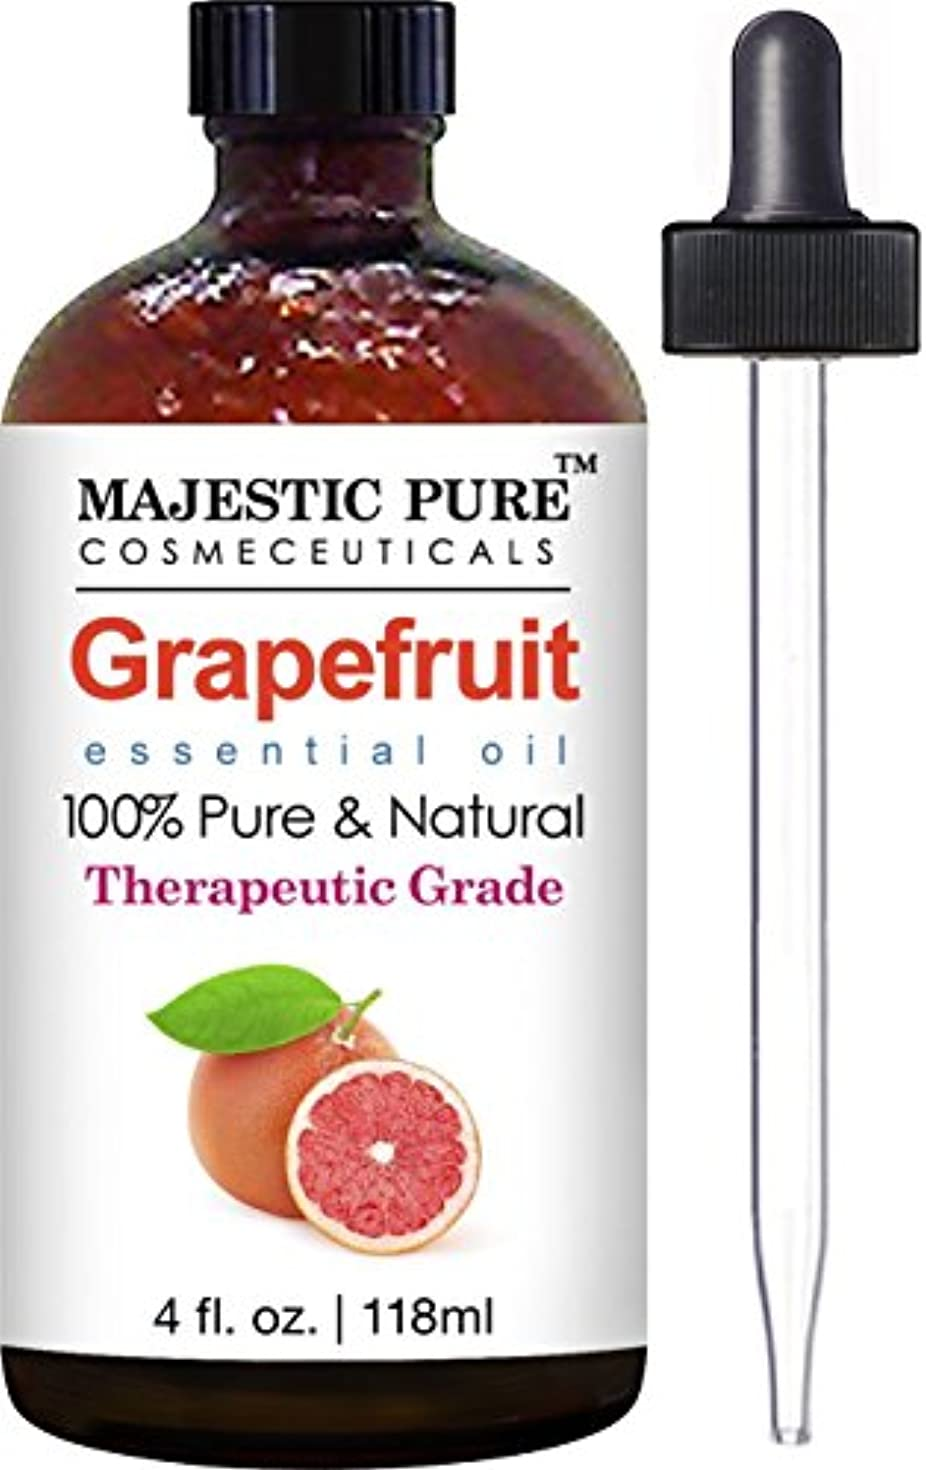 評価可能純粋にアパートGrapefruit Essential Oil From Majestic Pure, Premium Quality Oil from Citrus Racemosa, Therapeutic Grade, 4 Fl Oz by Majestic Pure